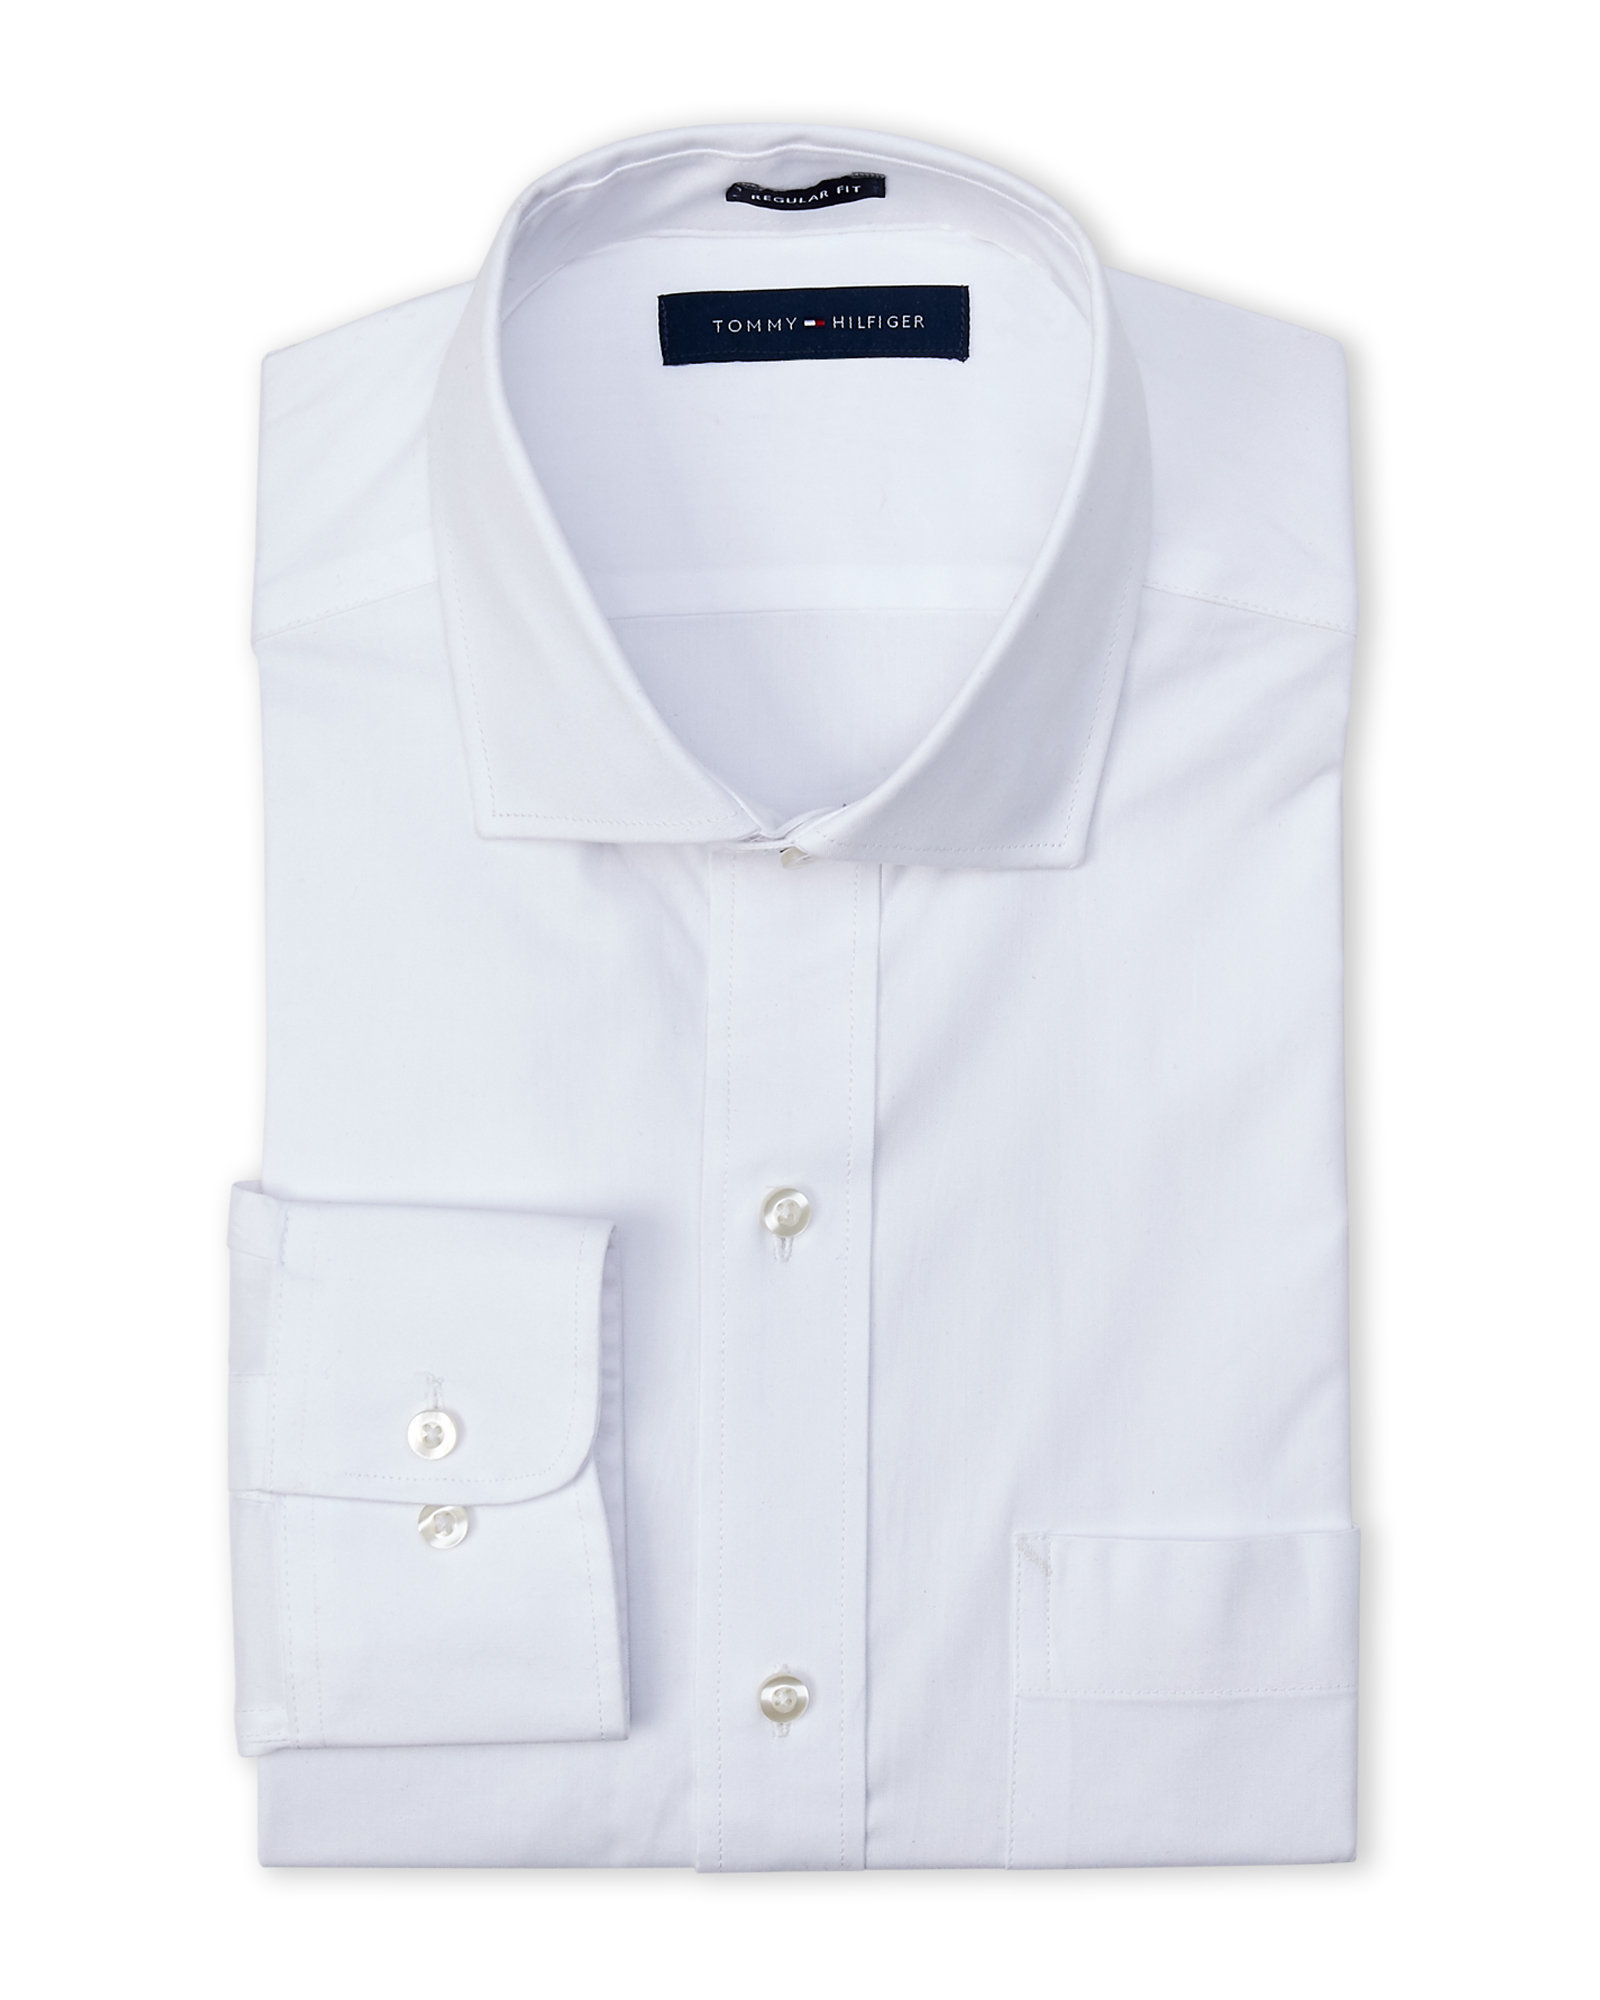 Tommy hilfiger white regular fit dress shirt in white for for Century 21 dress shirts